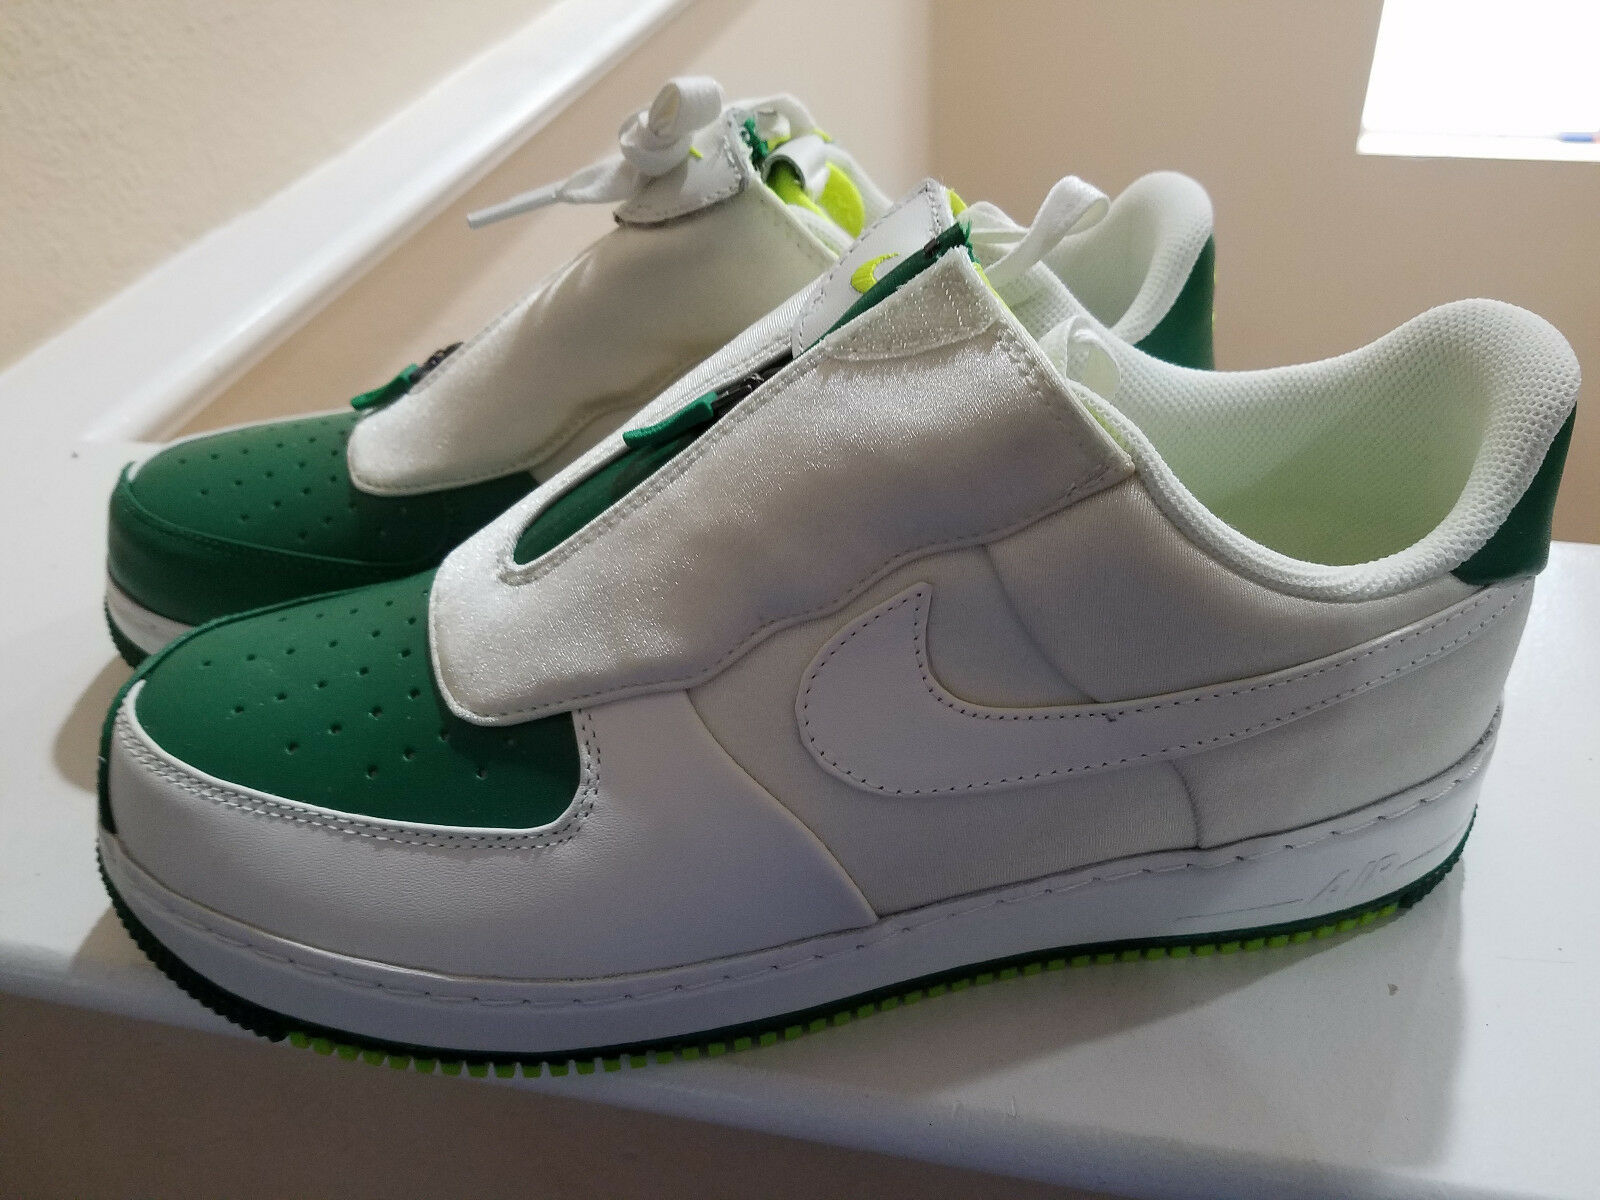 New Nike Air Force 1 Low CMF LW GP SIG Pine Green Men's 11 Model